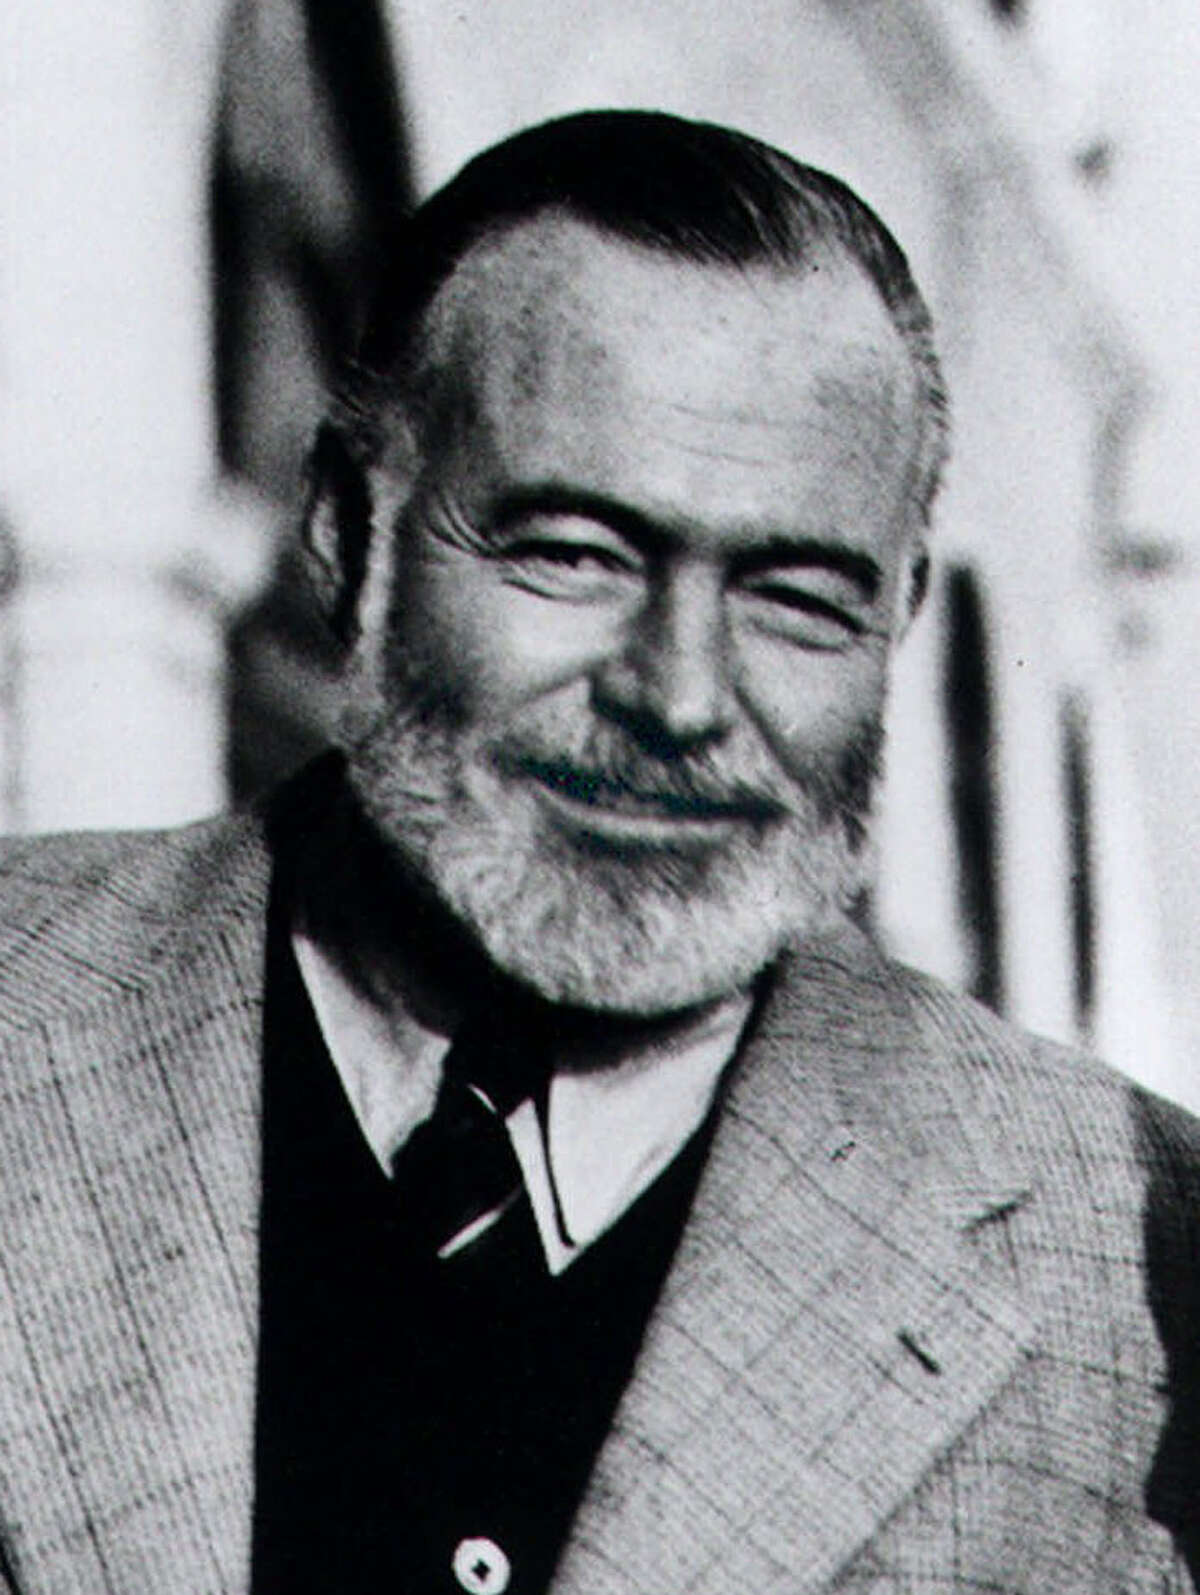 From top: Ernest Hemingway was a